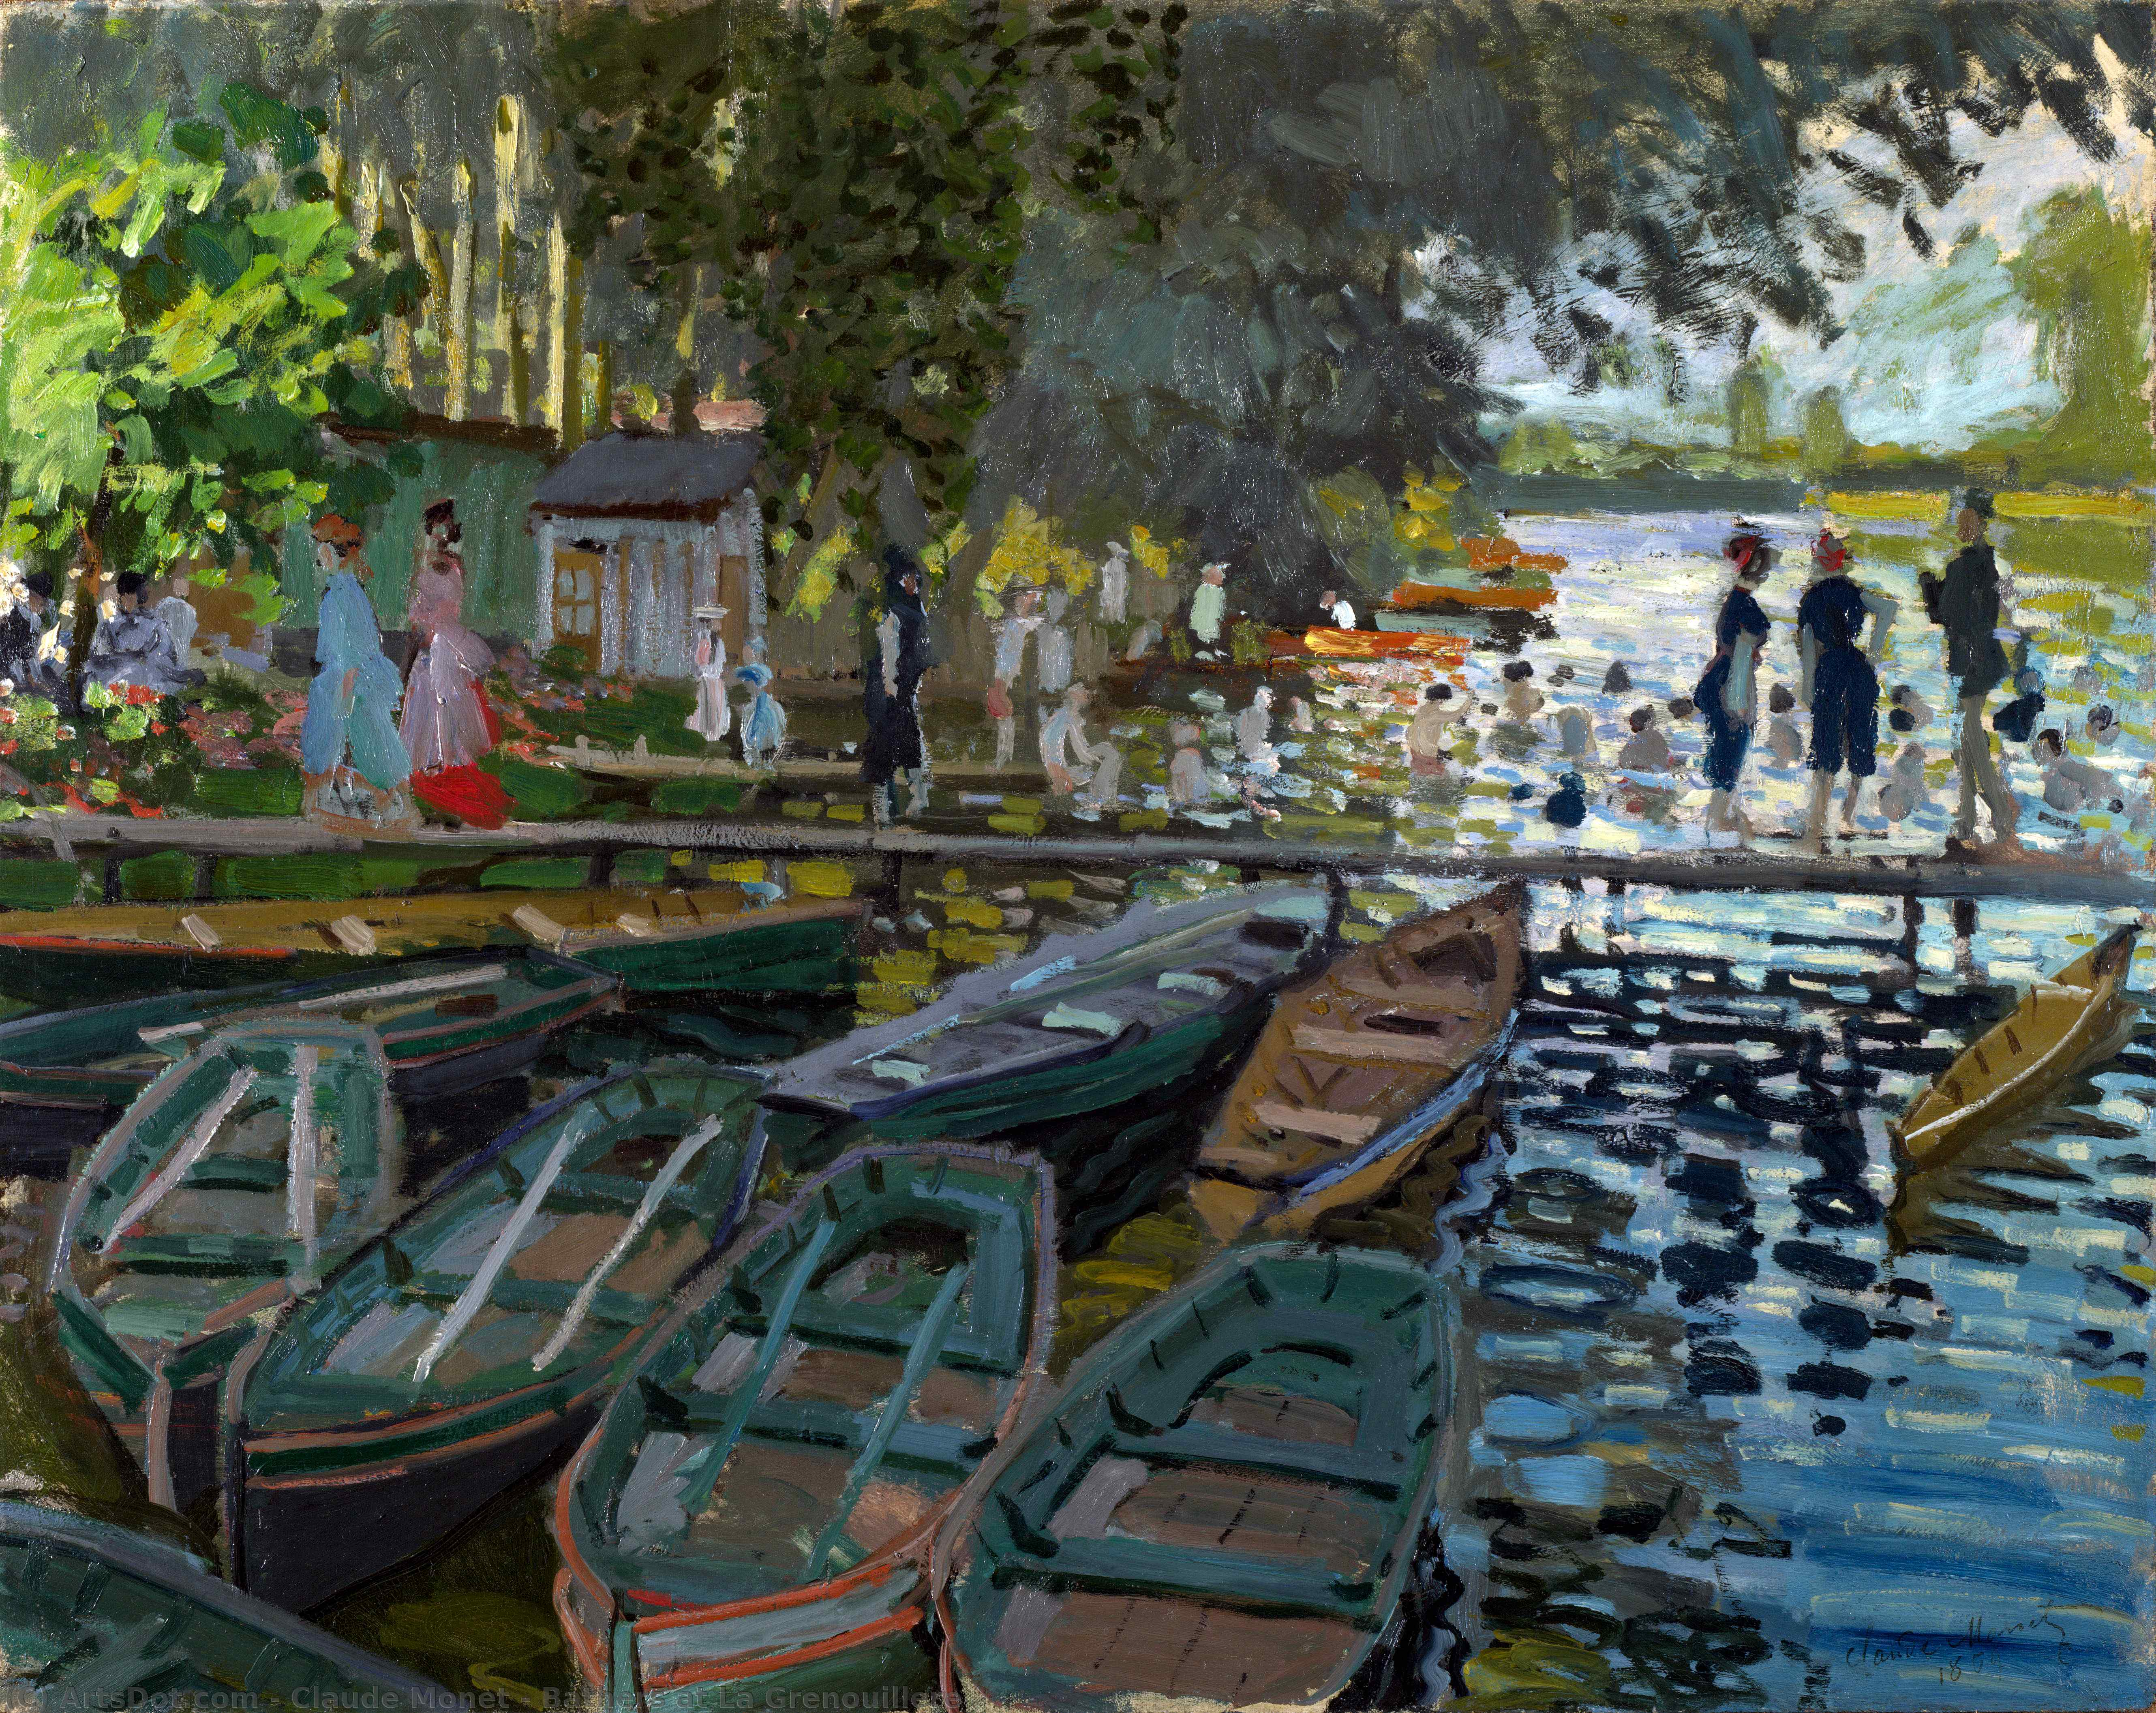 Wikioo.org - The Encyclopedia of Fine Arts - Painting, Artwork by Claude Monet - Bathers at La Grenouillere